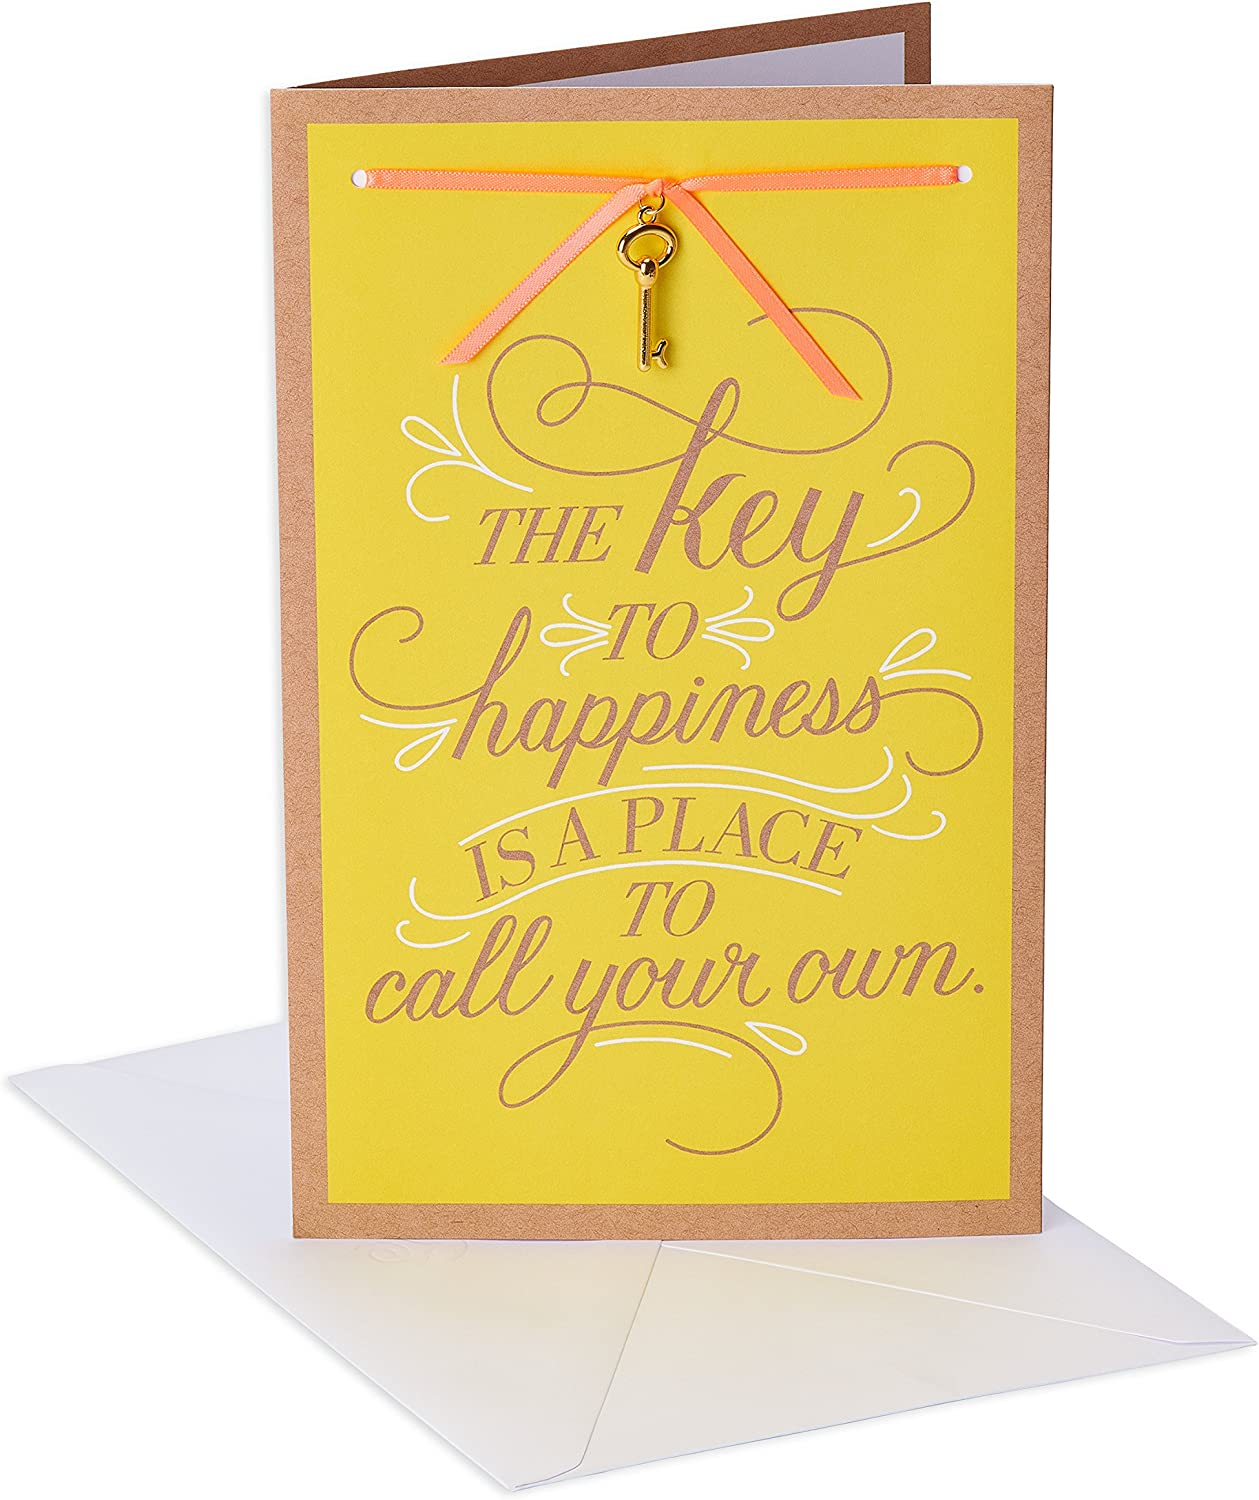 American Greetings New Home Card (Key to Happiness)